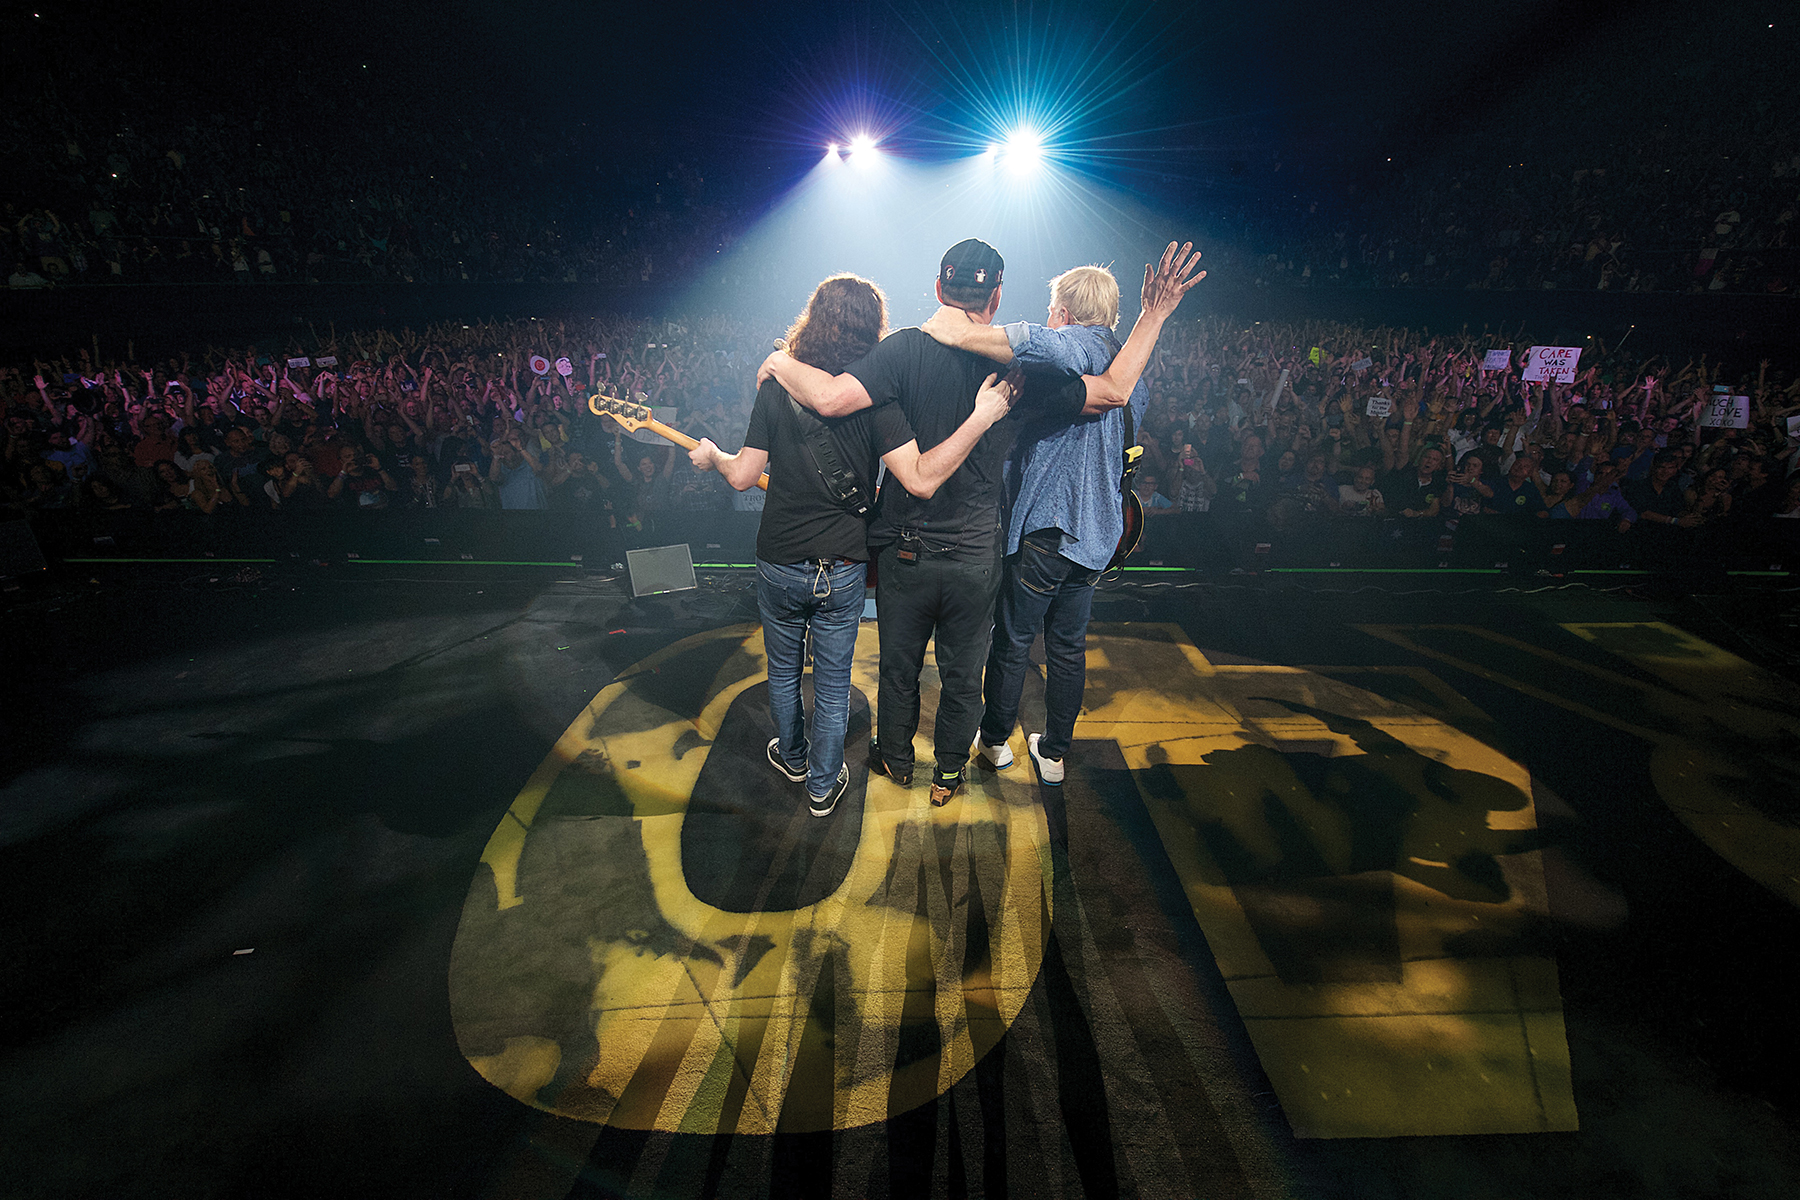 A FAREWELL TO KINGS: For the first time, Peart took a bow with his bandmates, at their final show, in 2015.